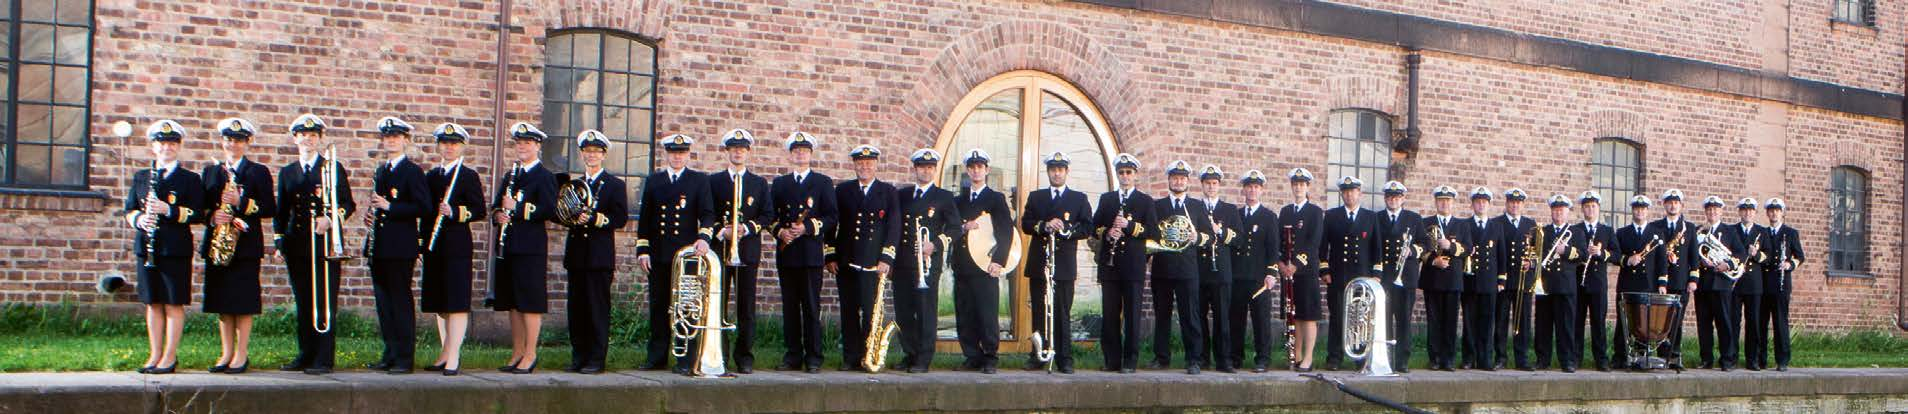 Royal Norwegian Navy Band